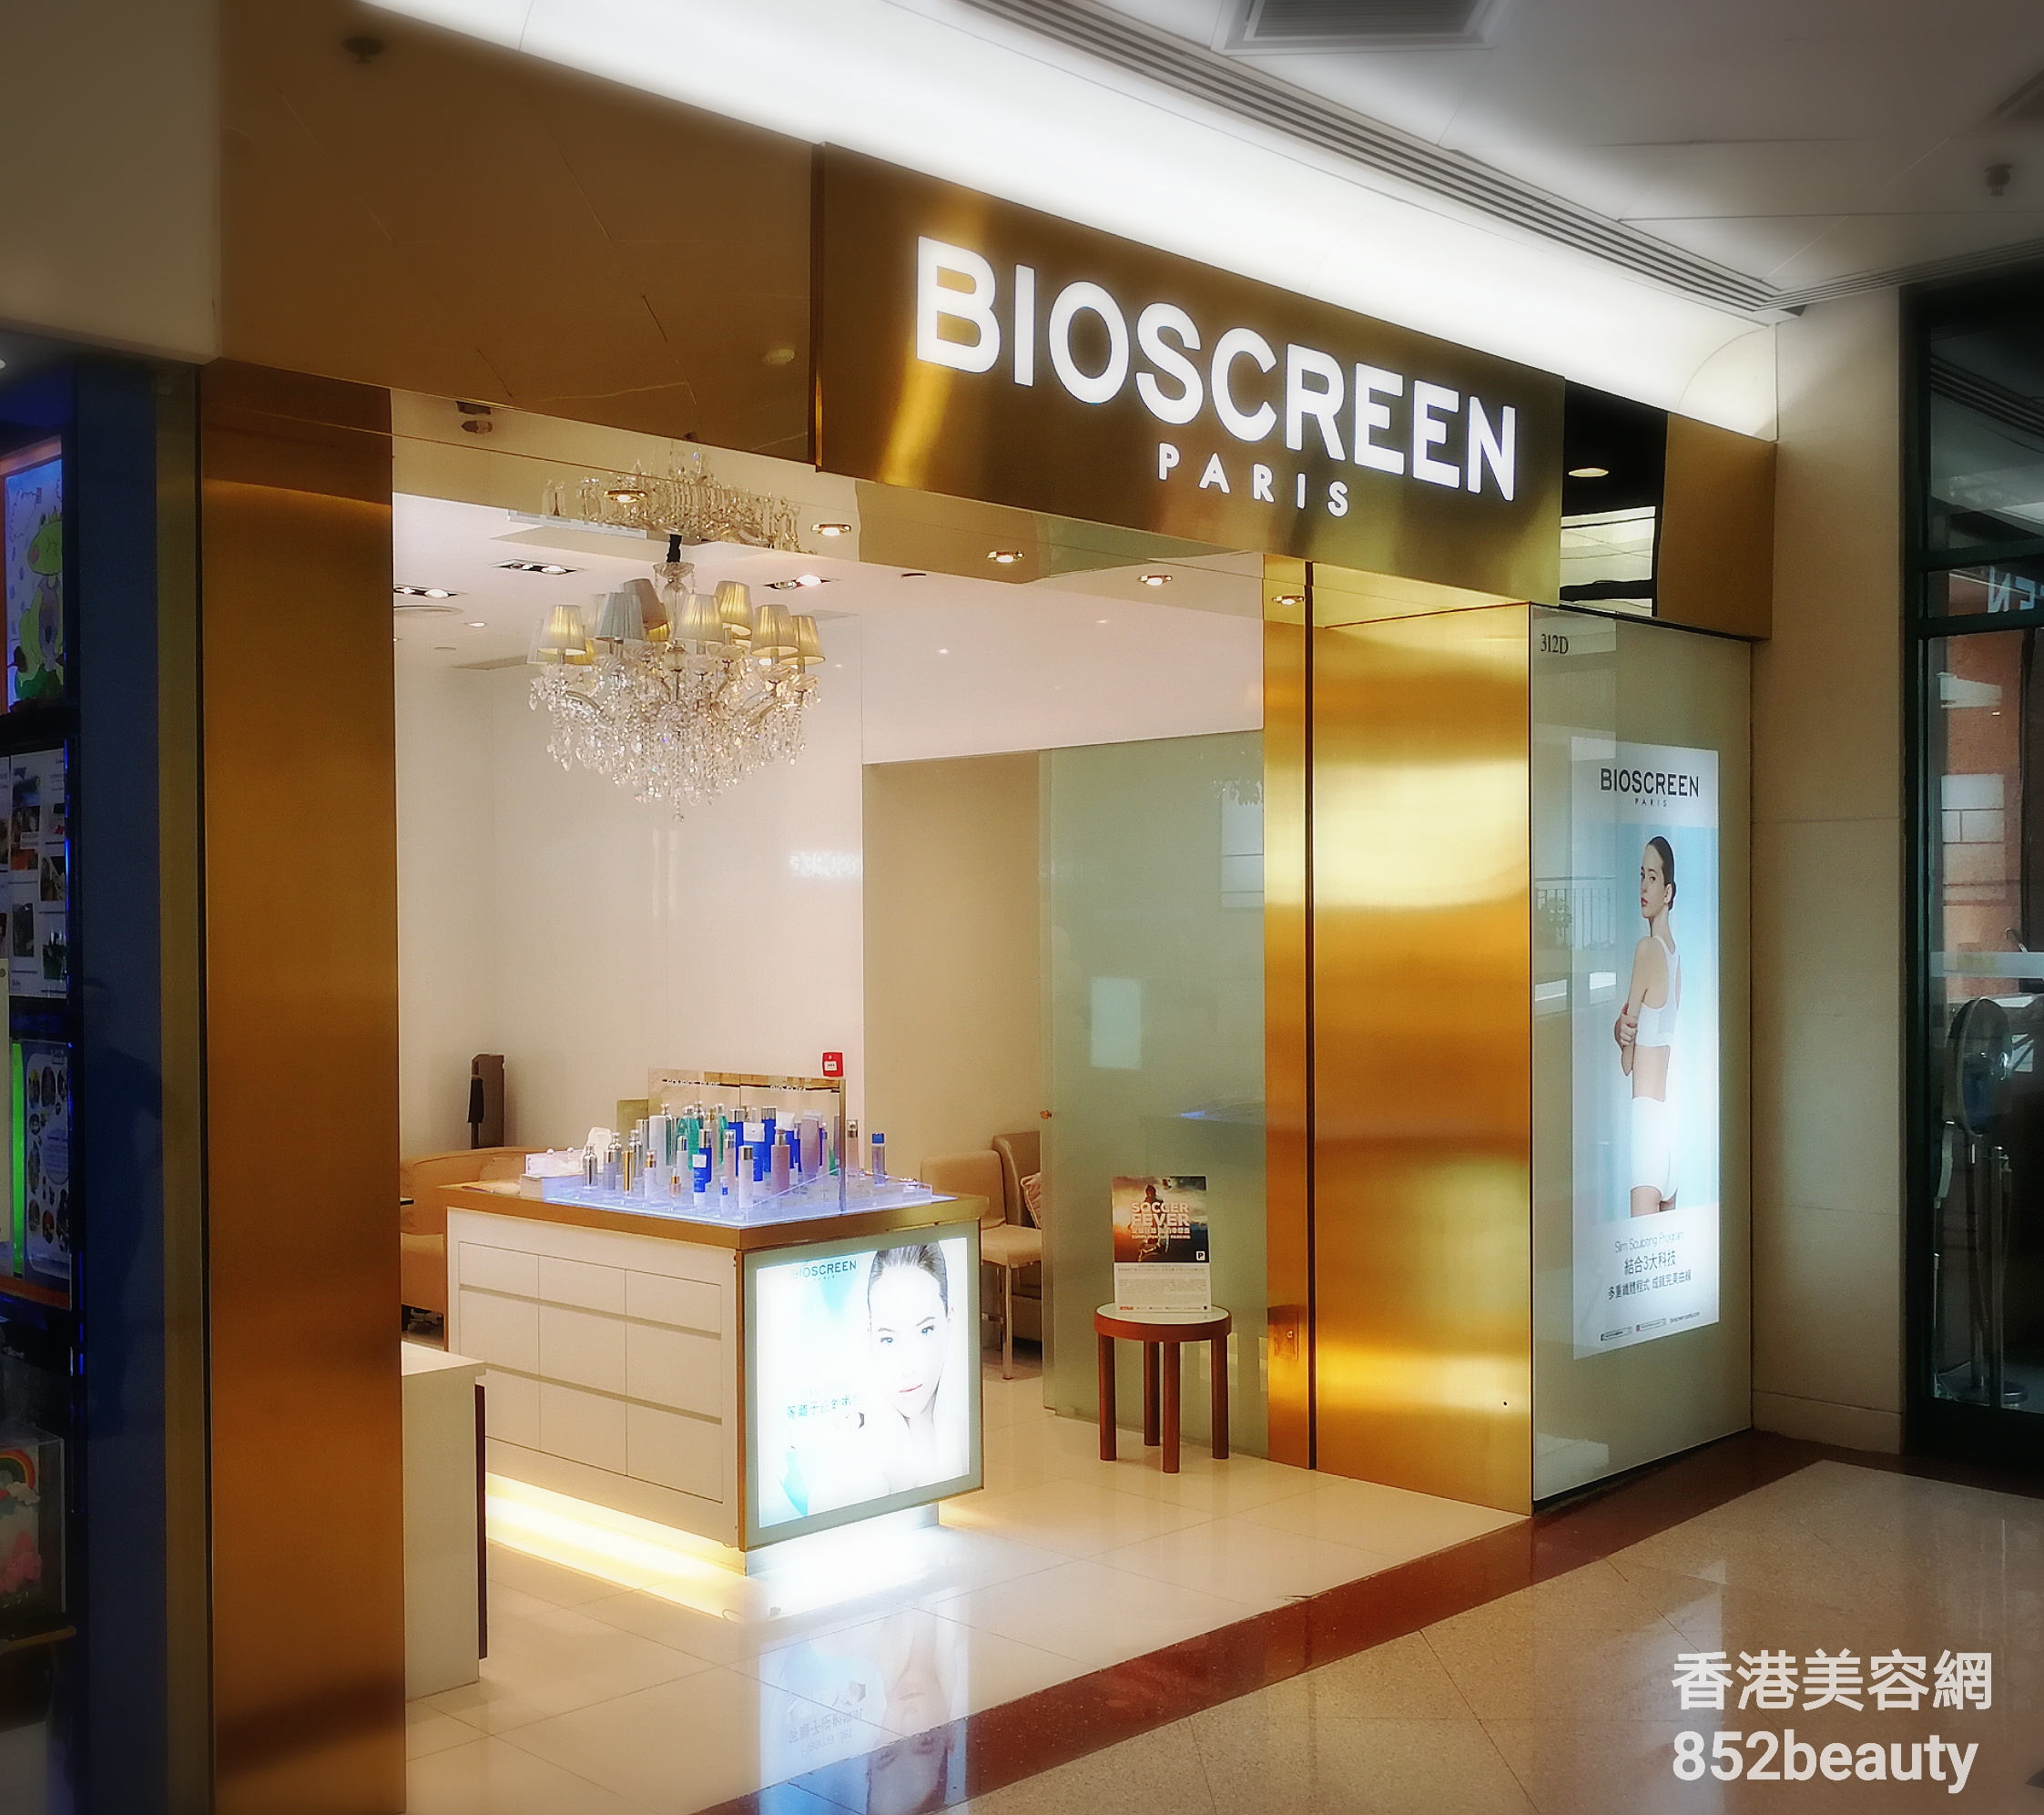 美容院 Beauty Salon 集團Bioscreen Paris (鑽石山) @ 香港美容網 HK Beauty Salon